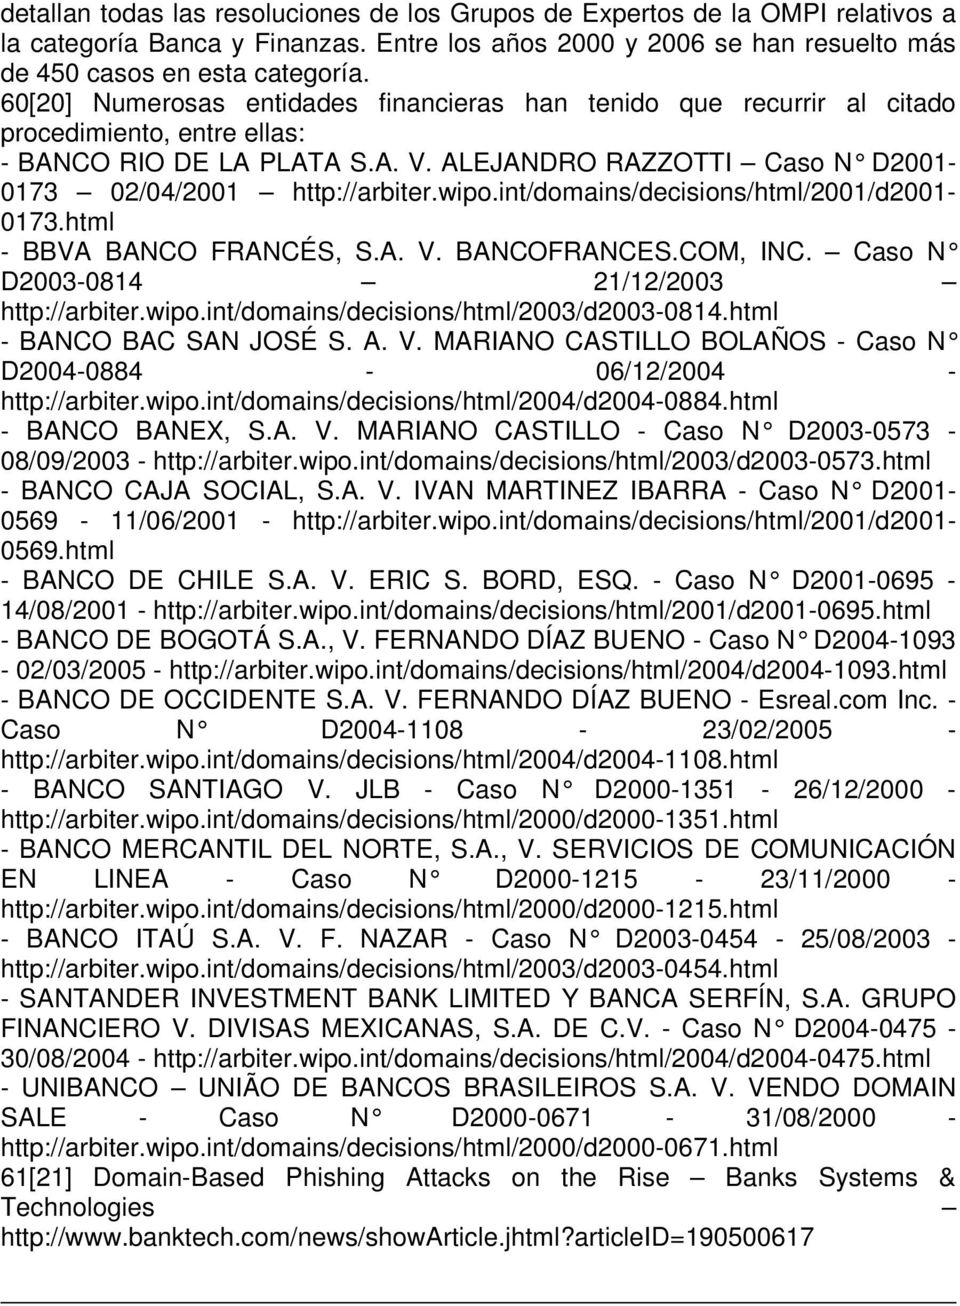 wipo.int/domains/decisions/html/2001/d2001-0173.html - BBVA BANCO FRANCÉS, S.A. V. BANCOFRANCES.COM, INC. Caso N D2003-0814 21/12/2003 http://arbiter.wipo.int/domains/decisions/html/2003/d2003-0814.